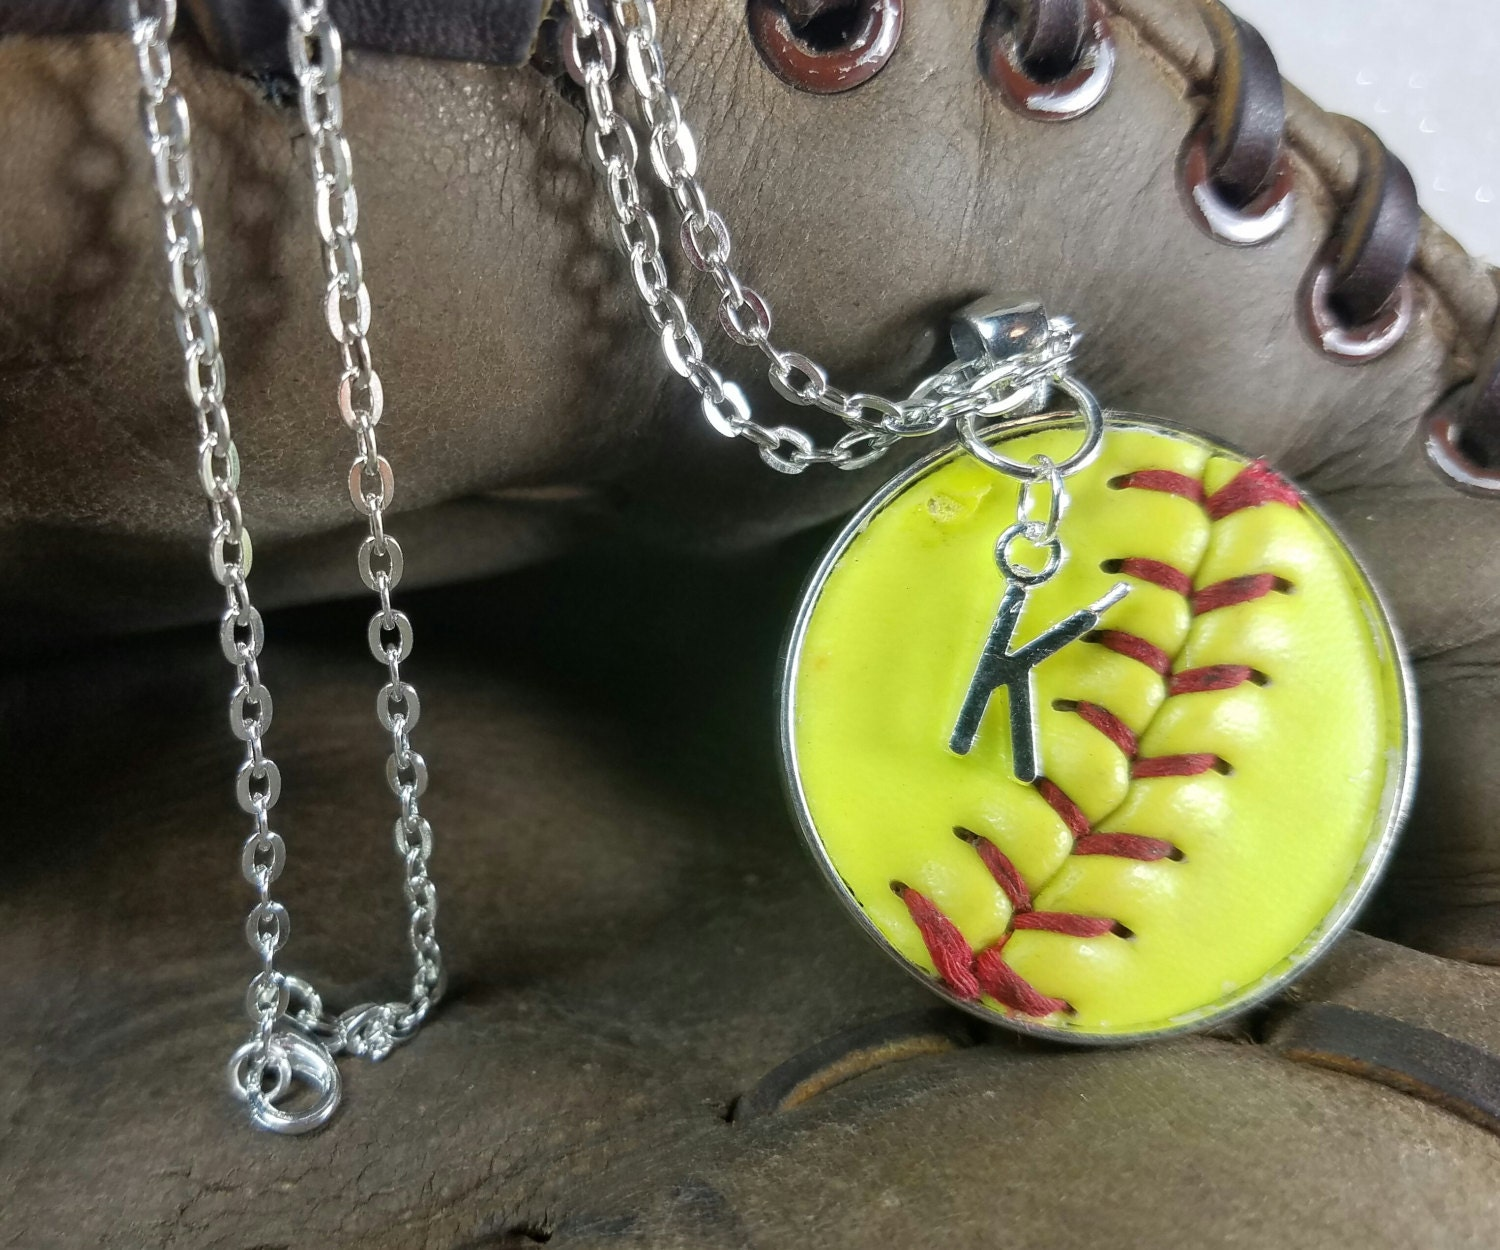 s softball dhgate piece access baseball com with online pendant store on ce product for necklace number